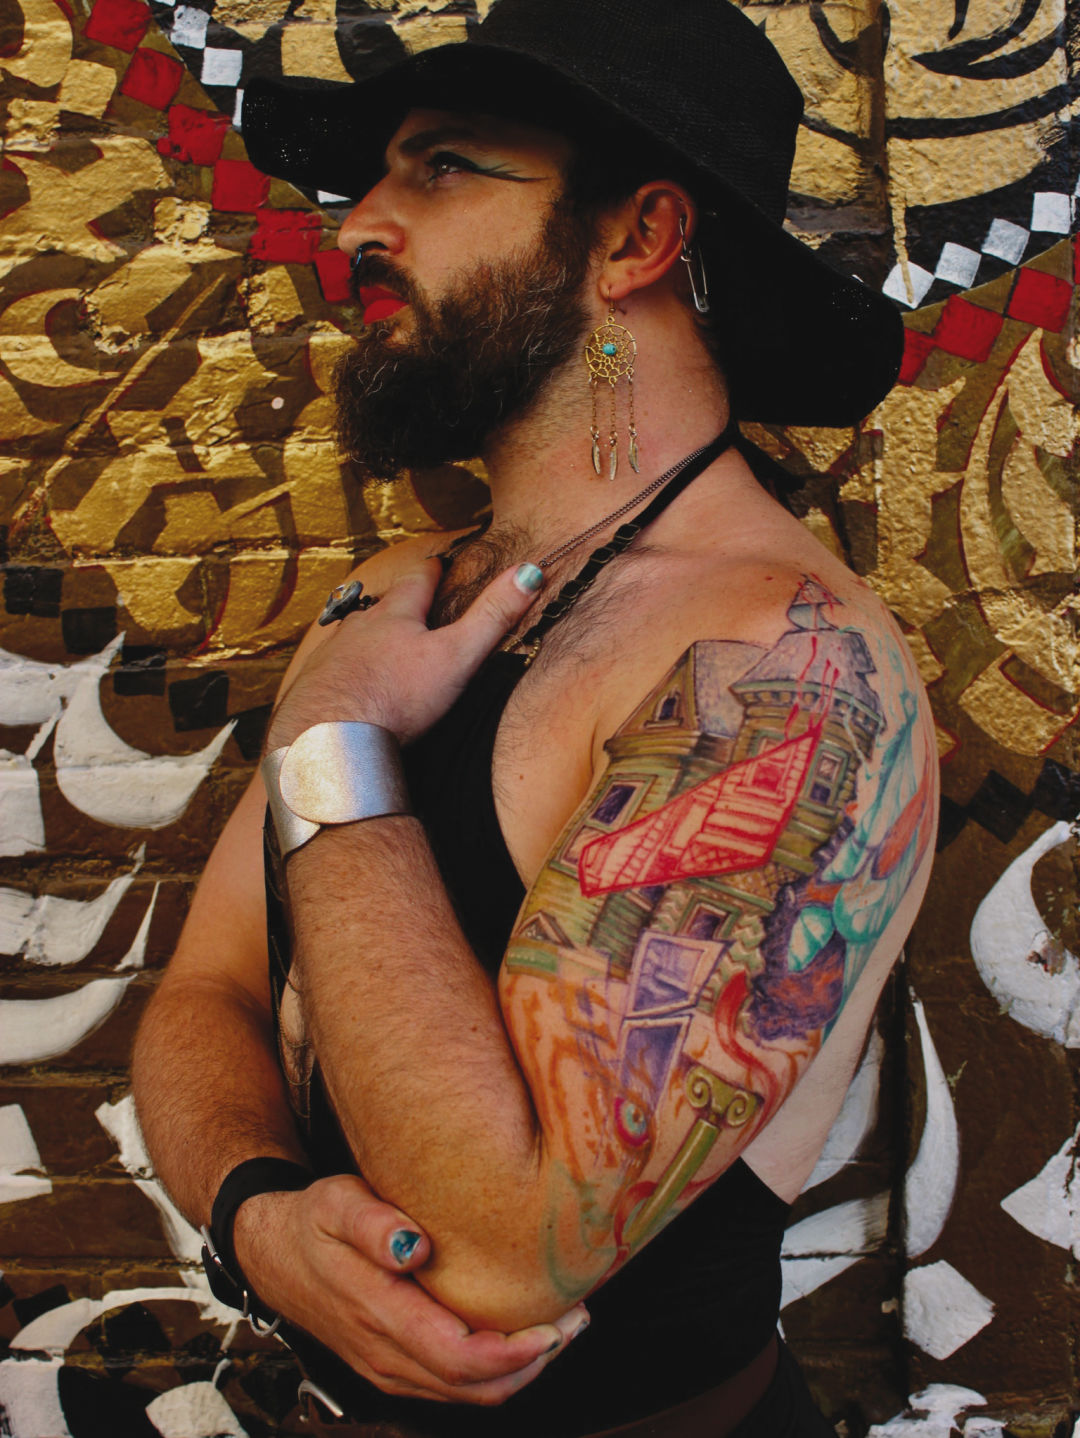 This Portland Tattoo Artist Specializes in Surprise Ink | Portland ...